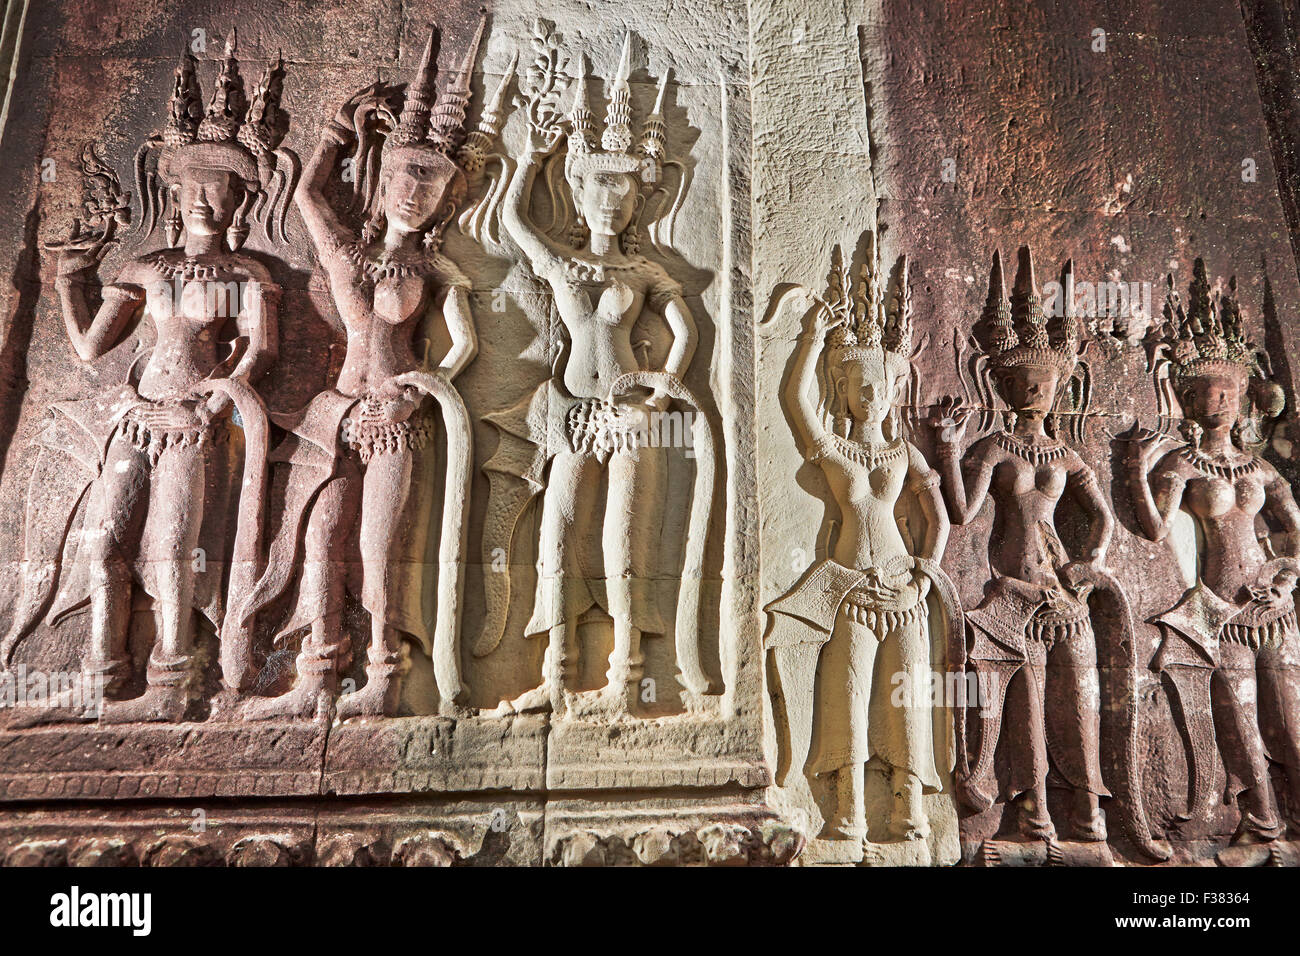 Bas-relief of apsaras (celestial dancers) in Angkor Wat temple. Angkor Archaeological Park, Siem Reap Province, - Stock Image